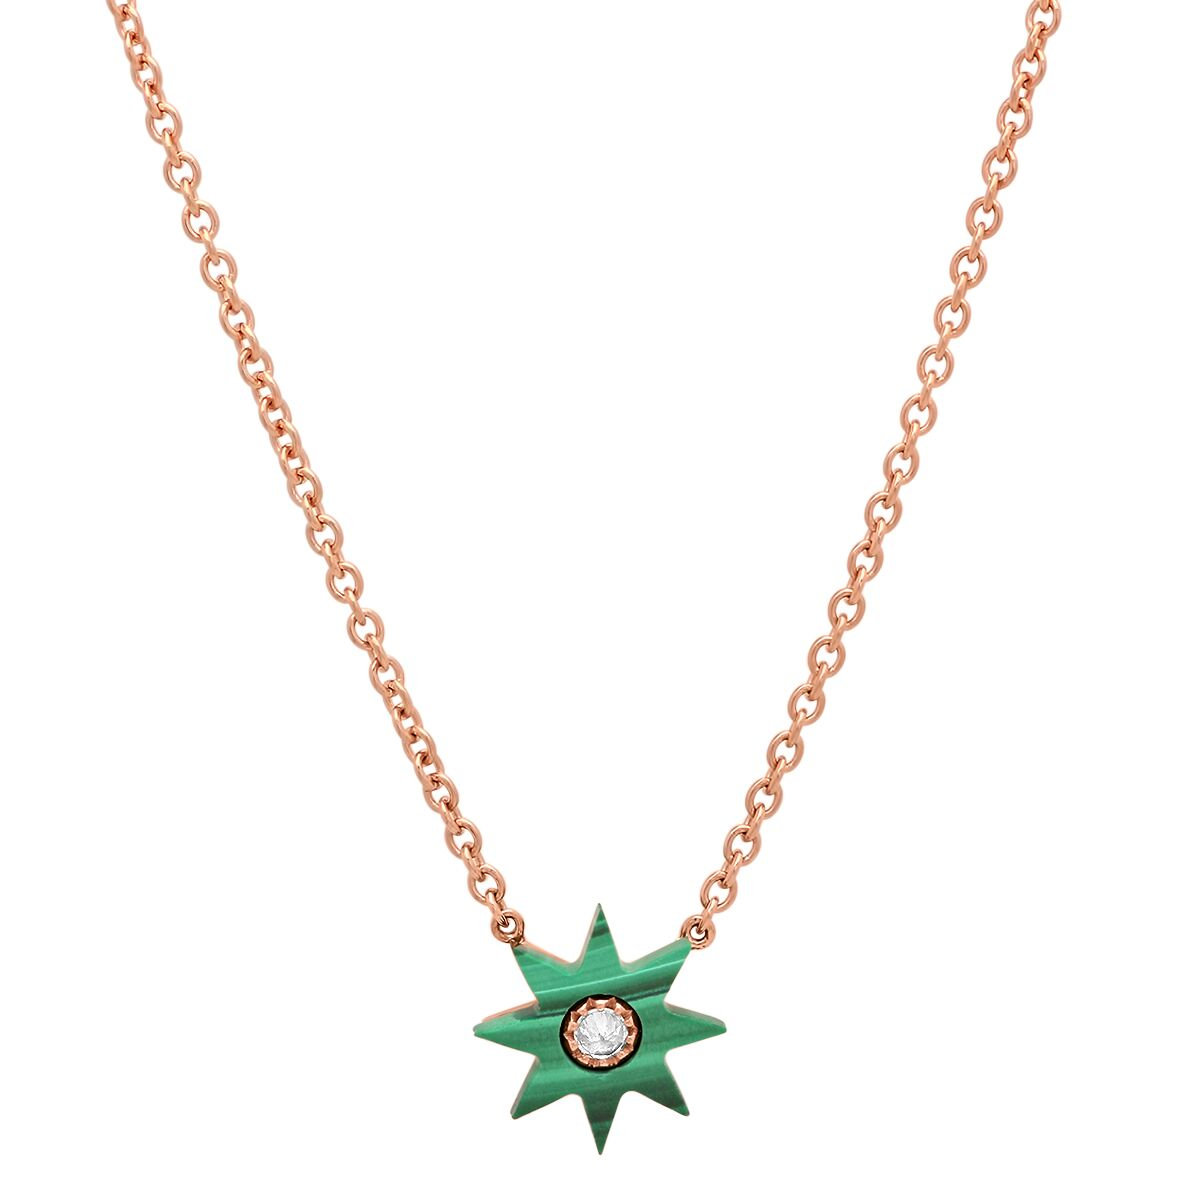 Malachite Star Necklace by Colette for Broken English Jewelry